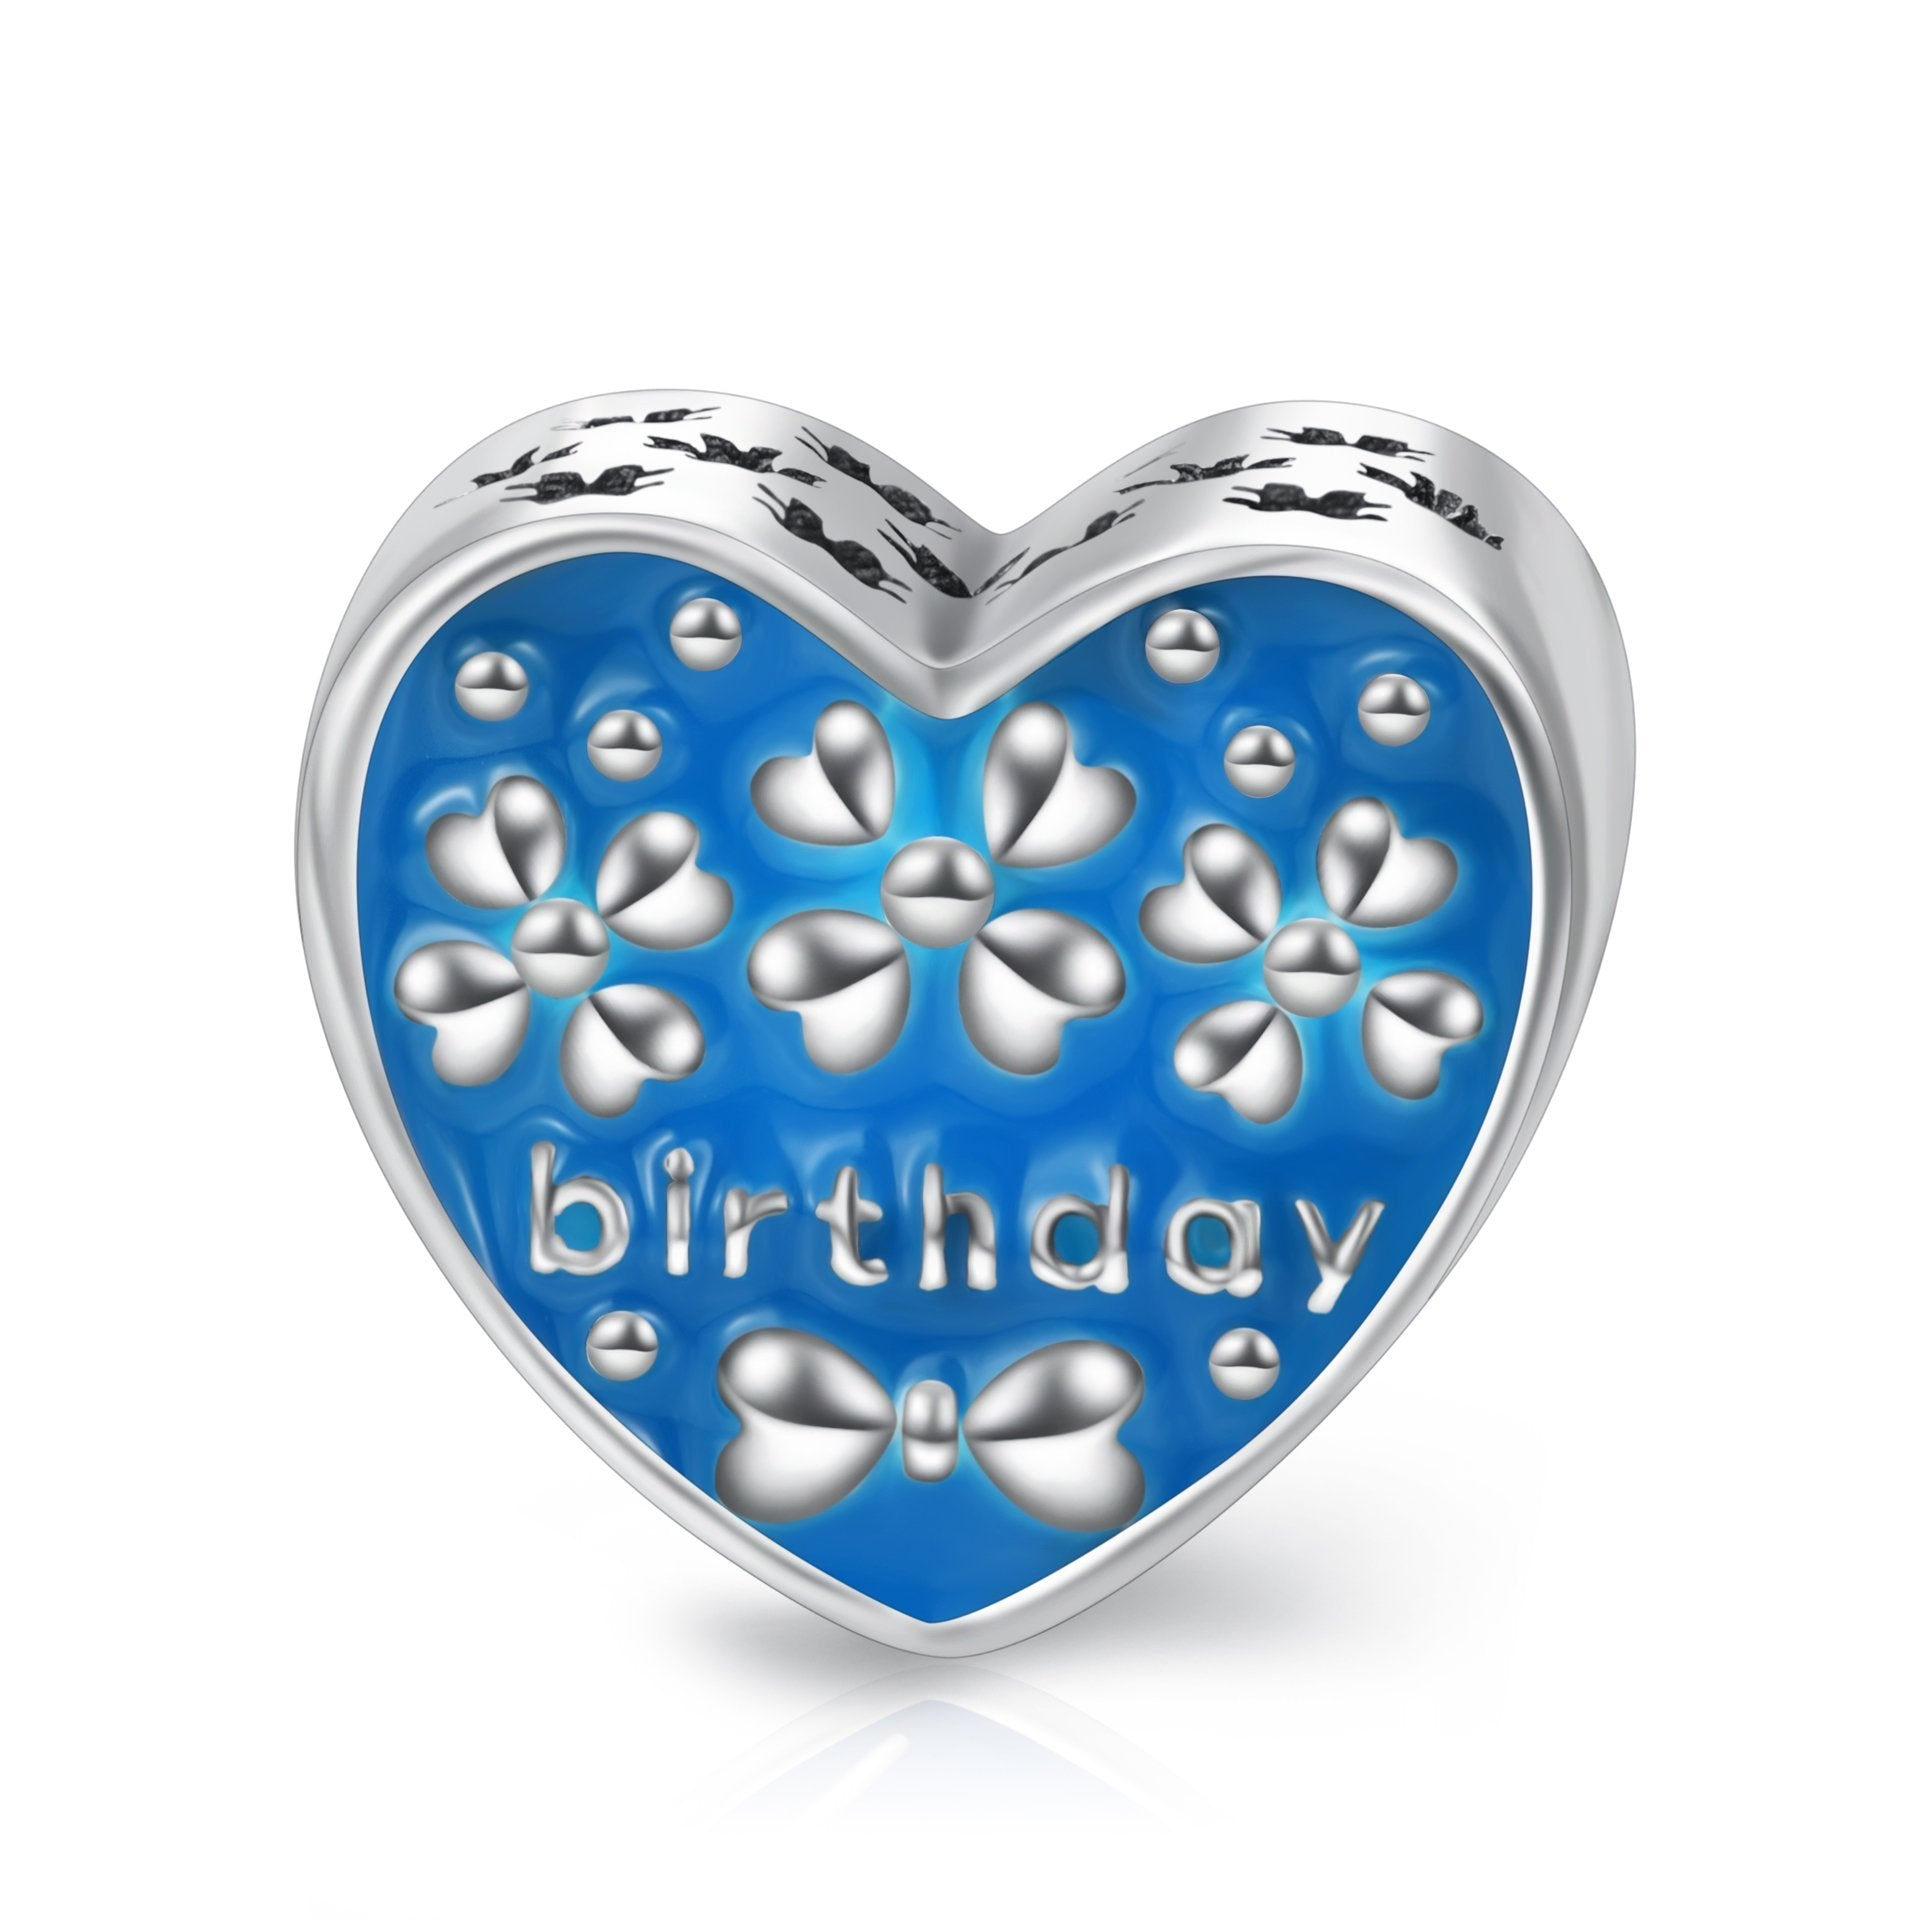 Sterling Silver Birthday Love Heart Charms Fit for Bracelet and Necklace